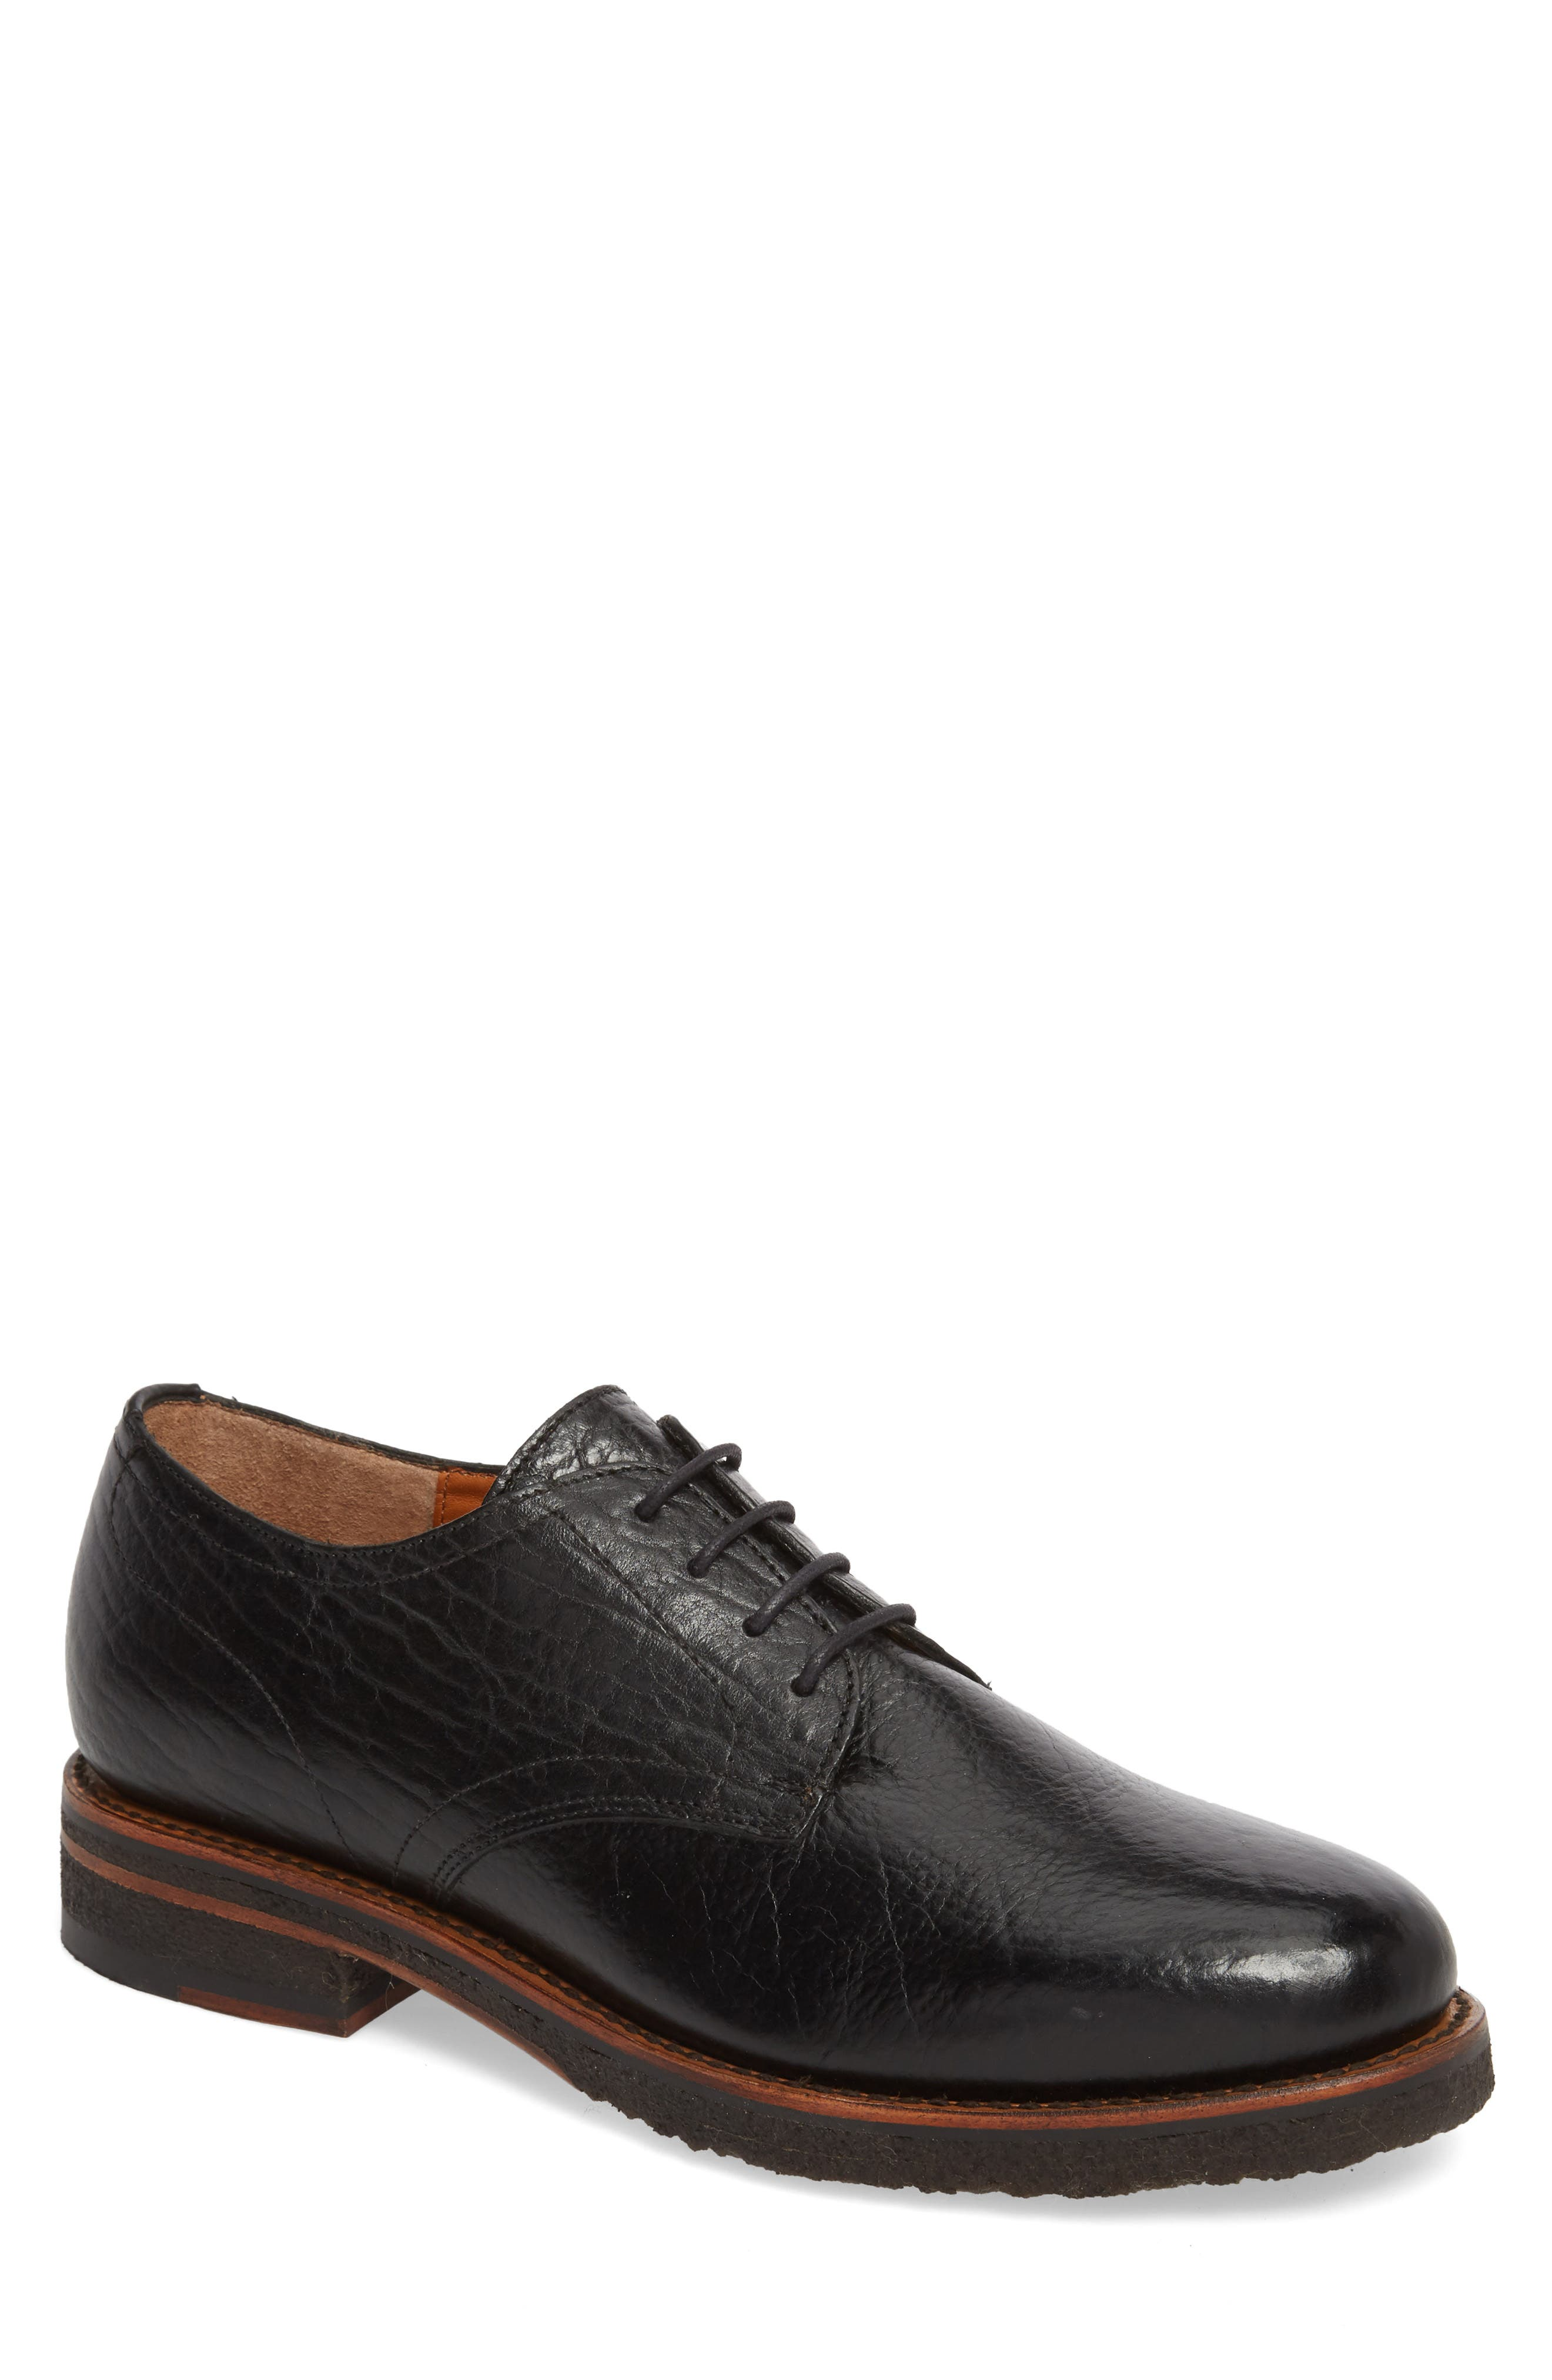 Two24 by Ariat Hawthorne Plain Toe Derby,                             Main thumbnail 1, color,                             Black Leather